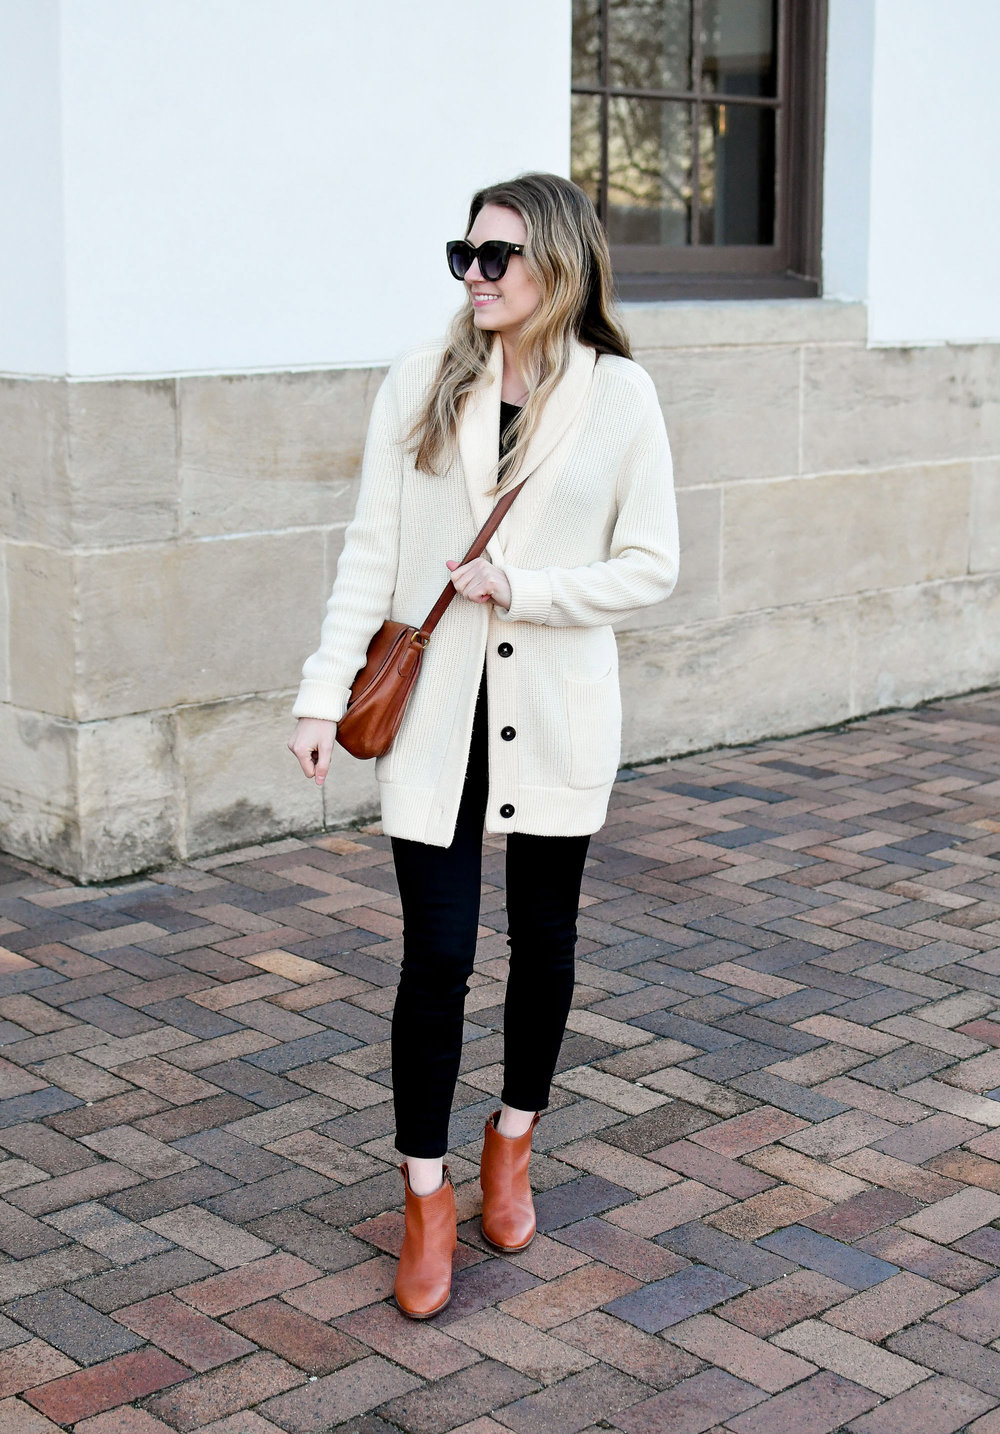 Black denim winter outfit with ivory cardigan and cognac ankle boots — Cotton Cashmere Cat Hair